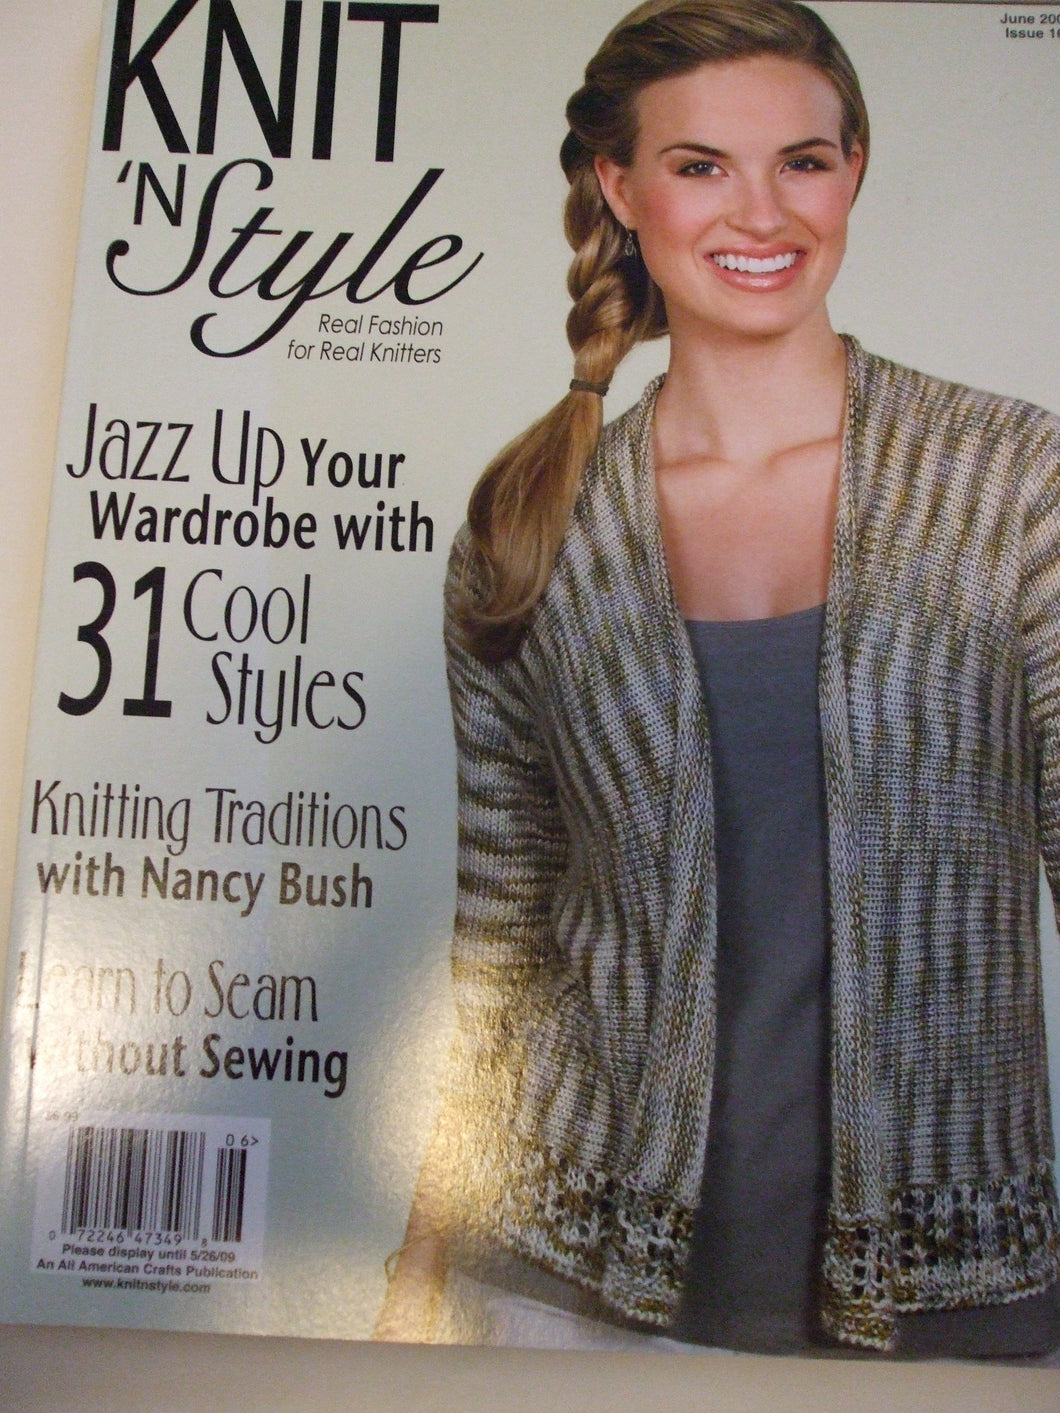 Knit & Style Magazine June 2009 #161